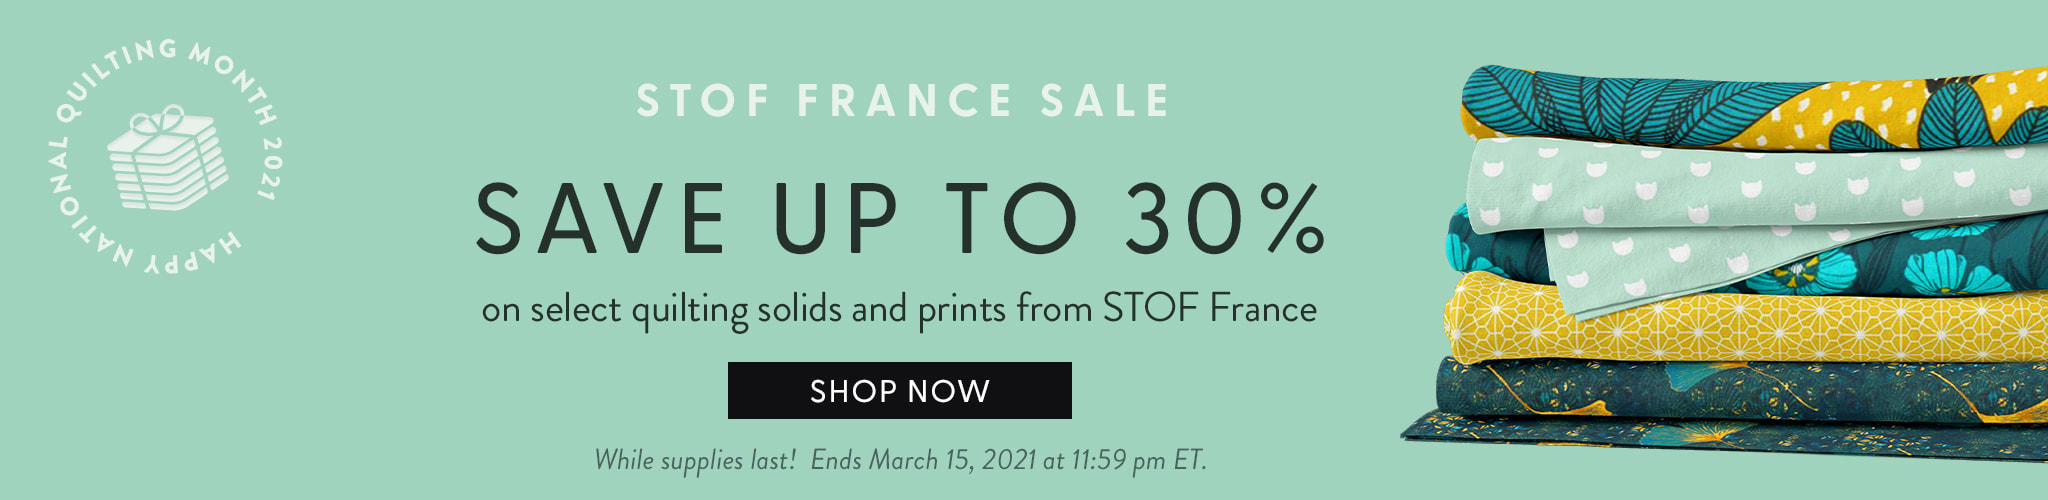 Stof France Sale - save up to 30% on select quilting fabrics from STOF france